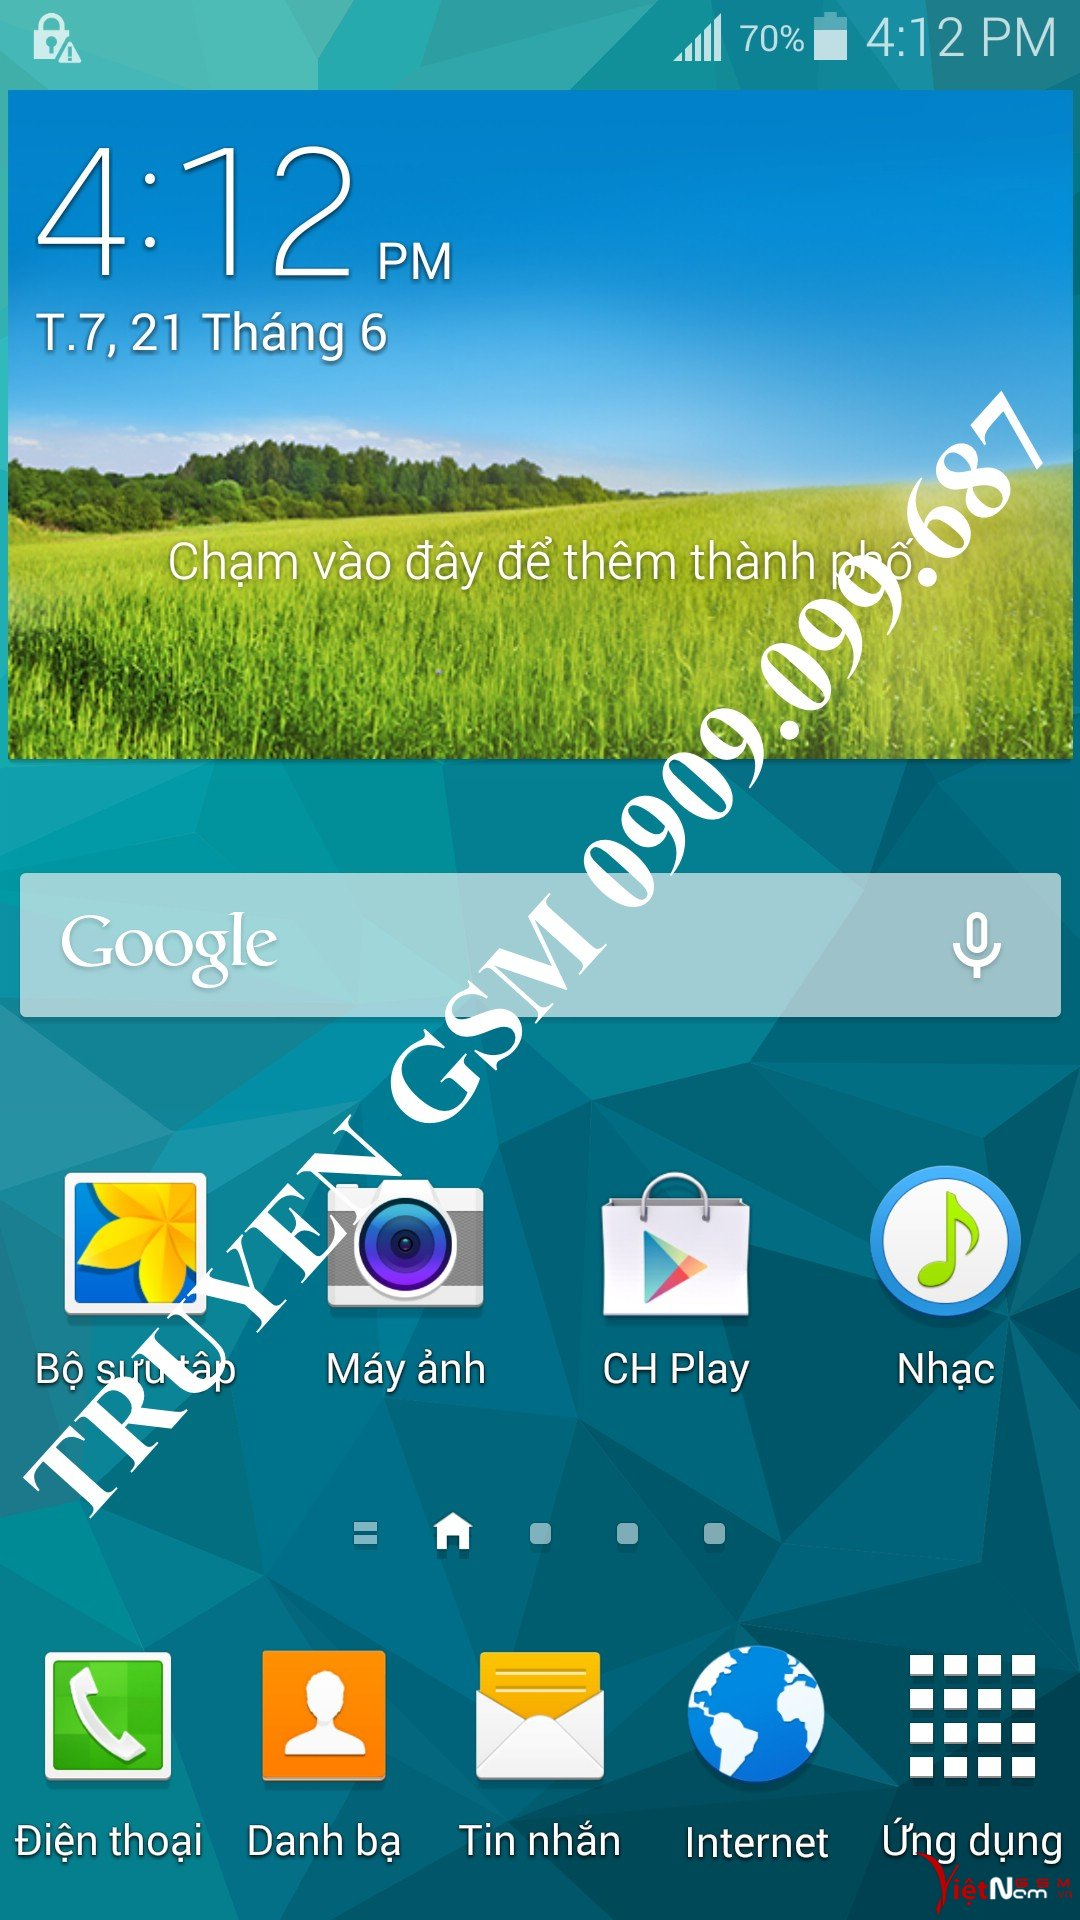 Screenshot_2014-06-21-16-12-31.jpg